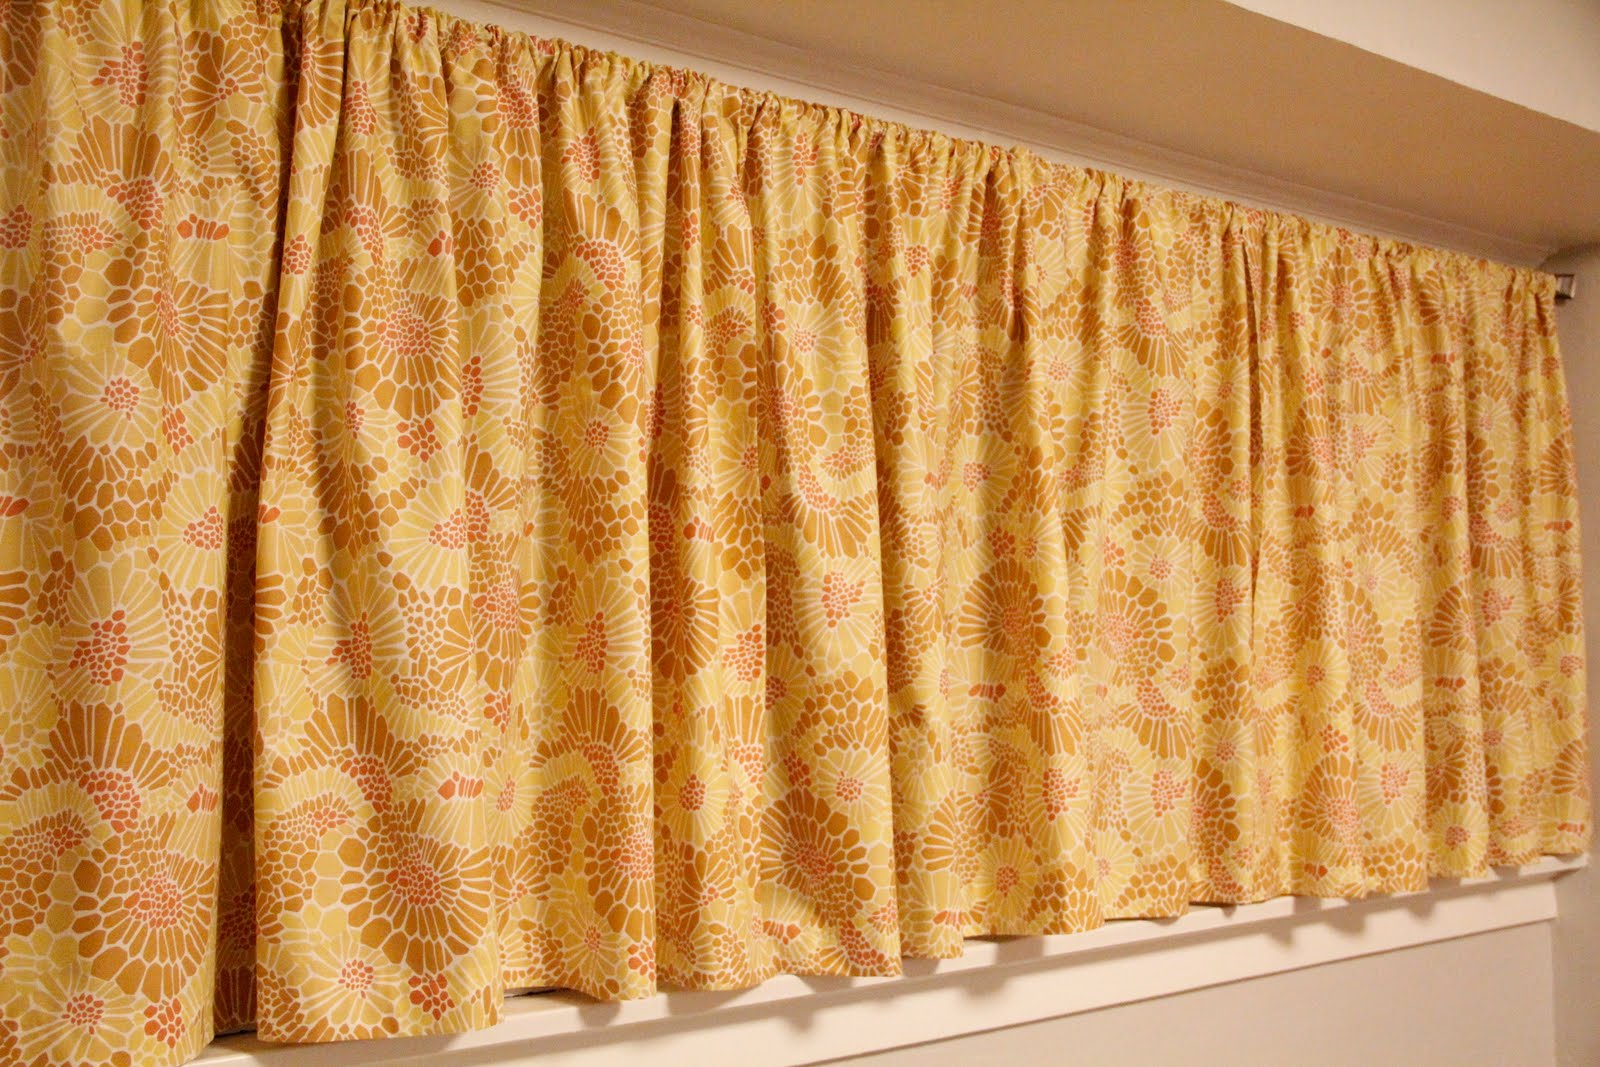 Homemade curtains - Homemade Curtains That Are Way Cheaper Than Pier One Curtains